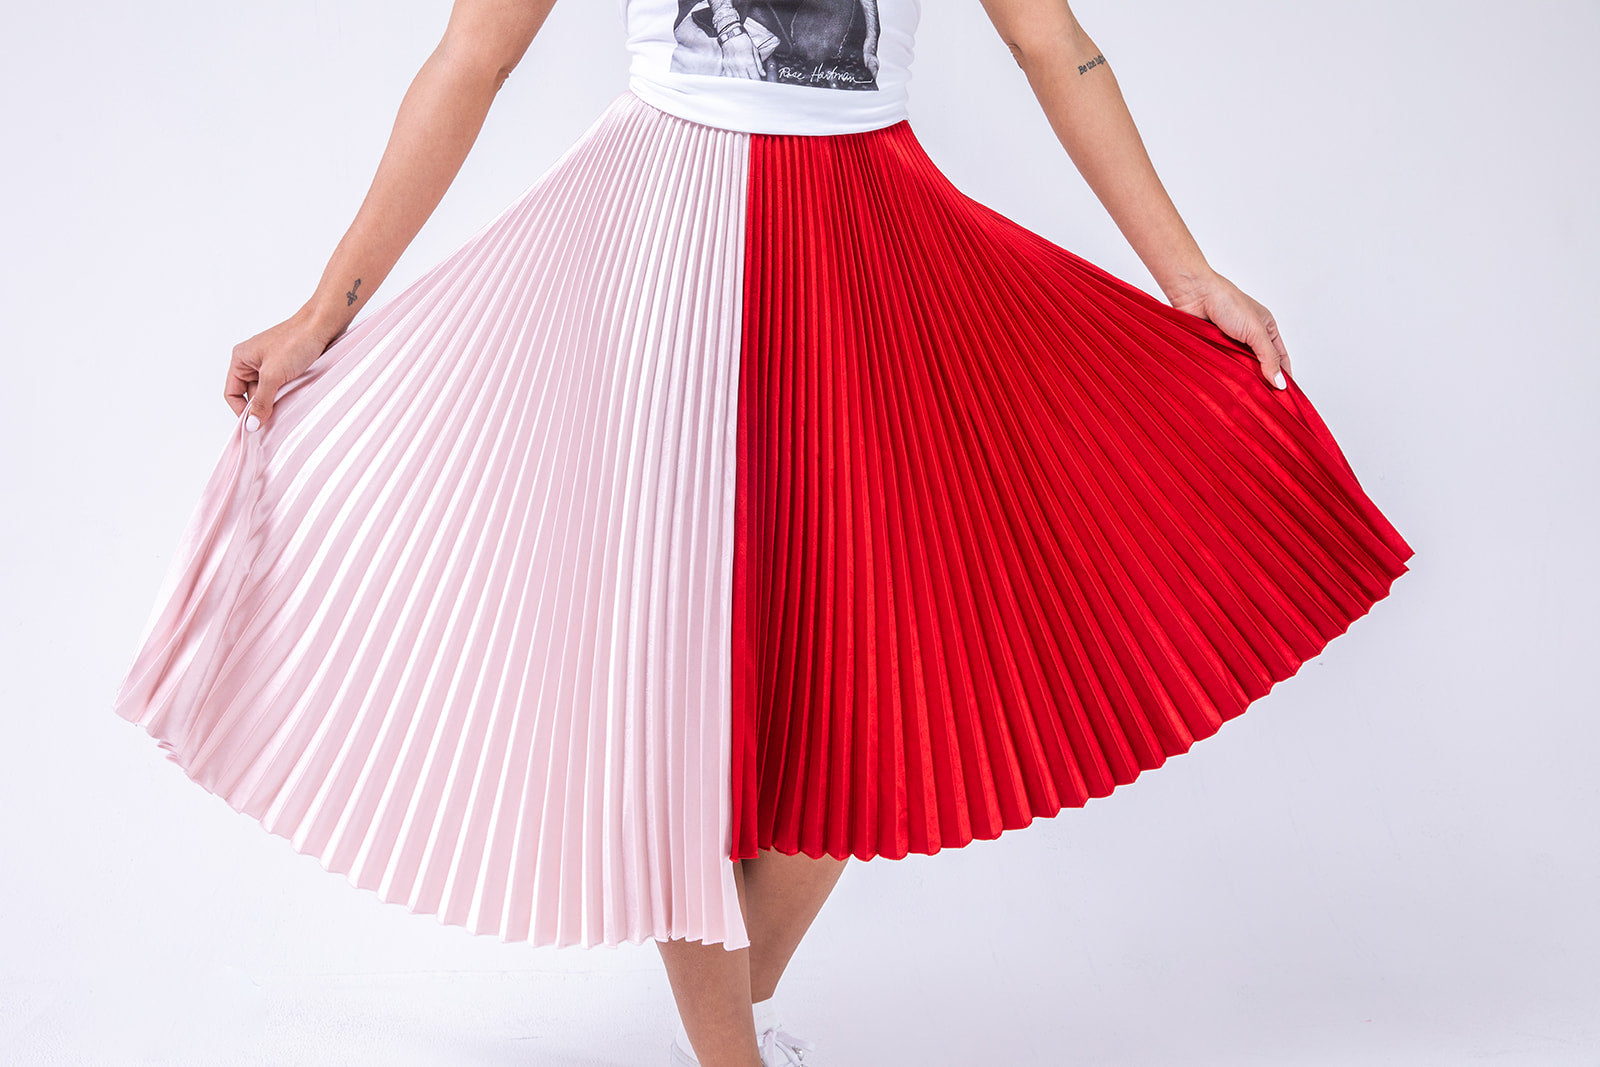 Pink and red pleated skirt features our #SnagDat section of amazing sale finds from our store sales floor.